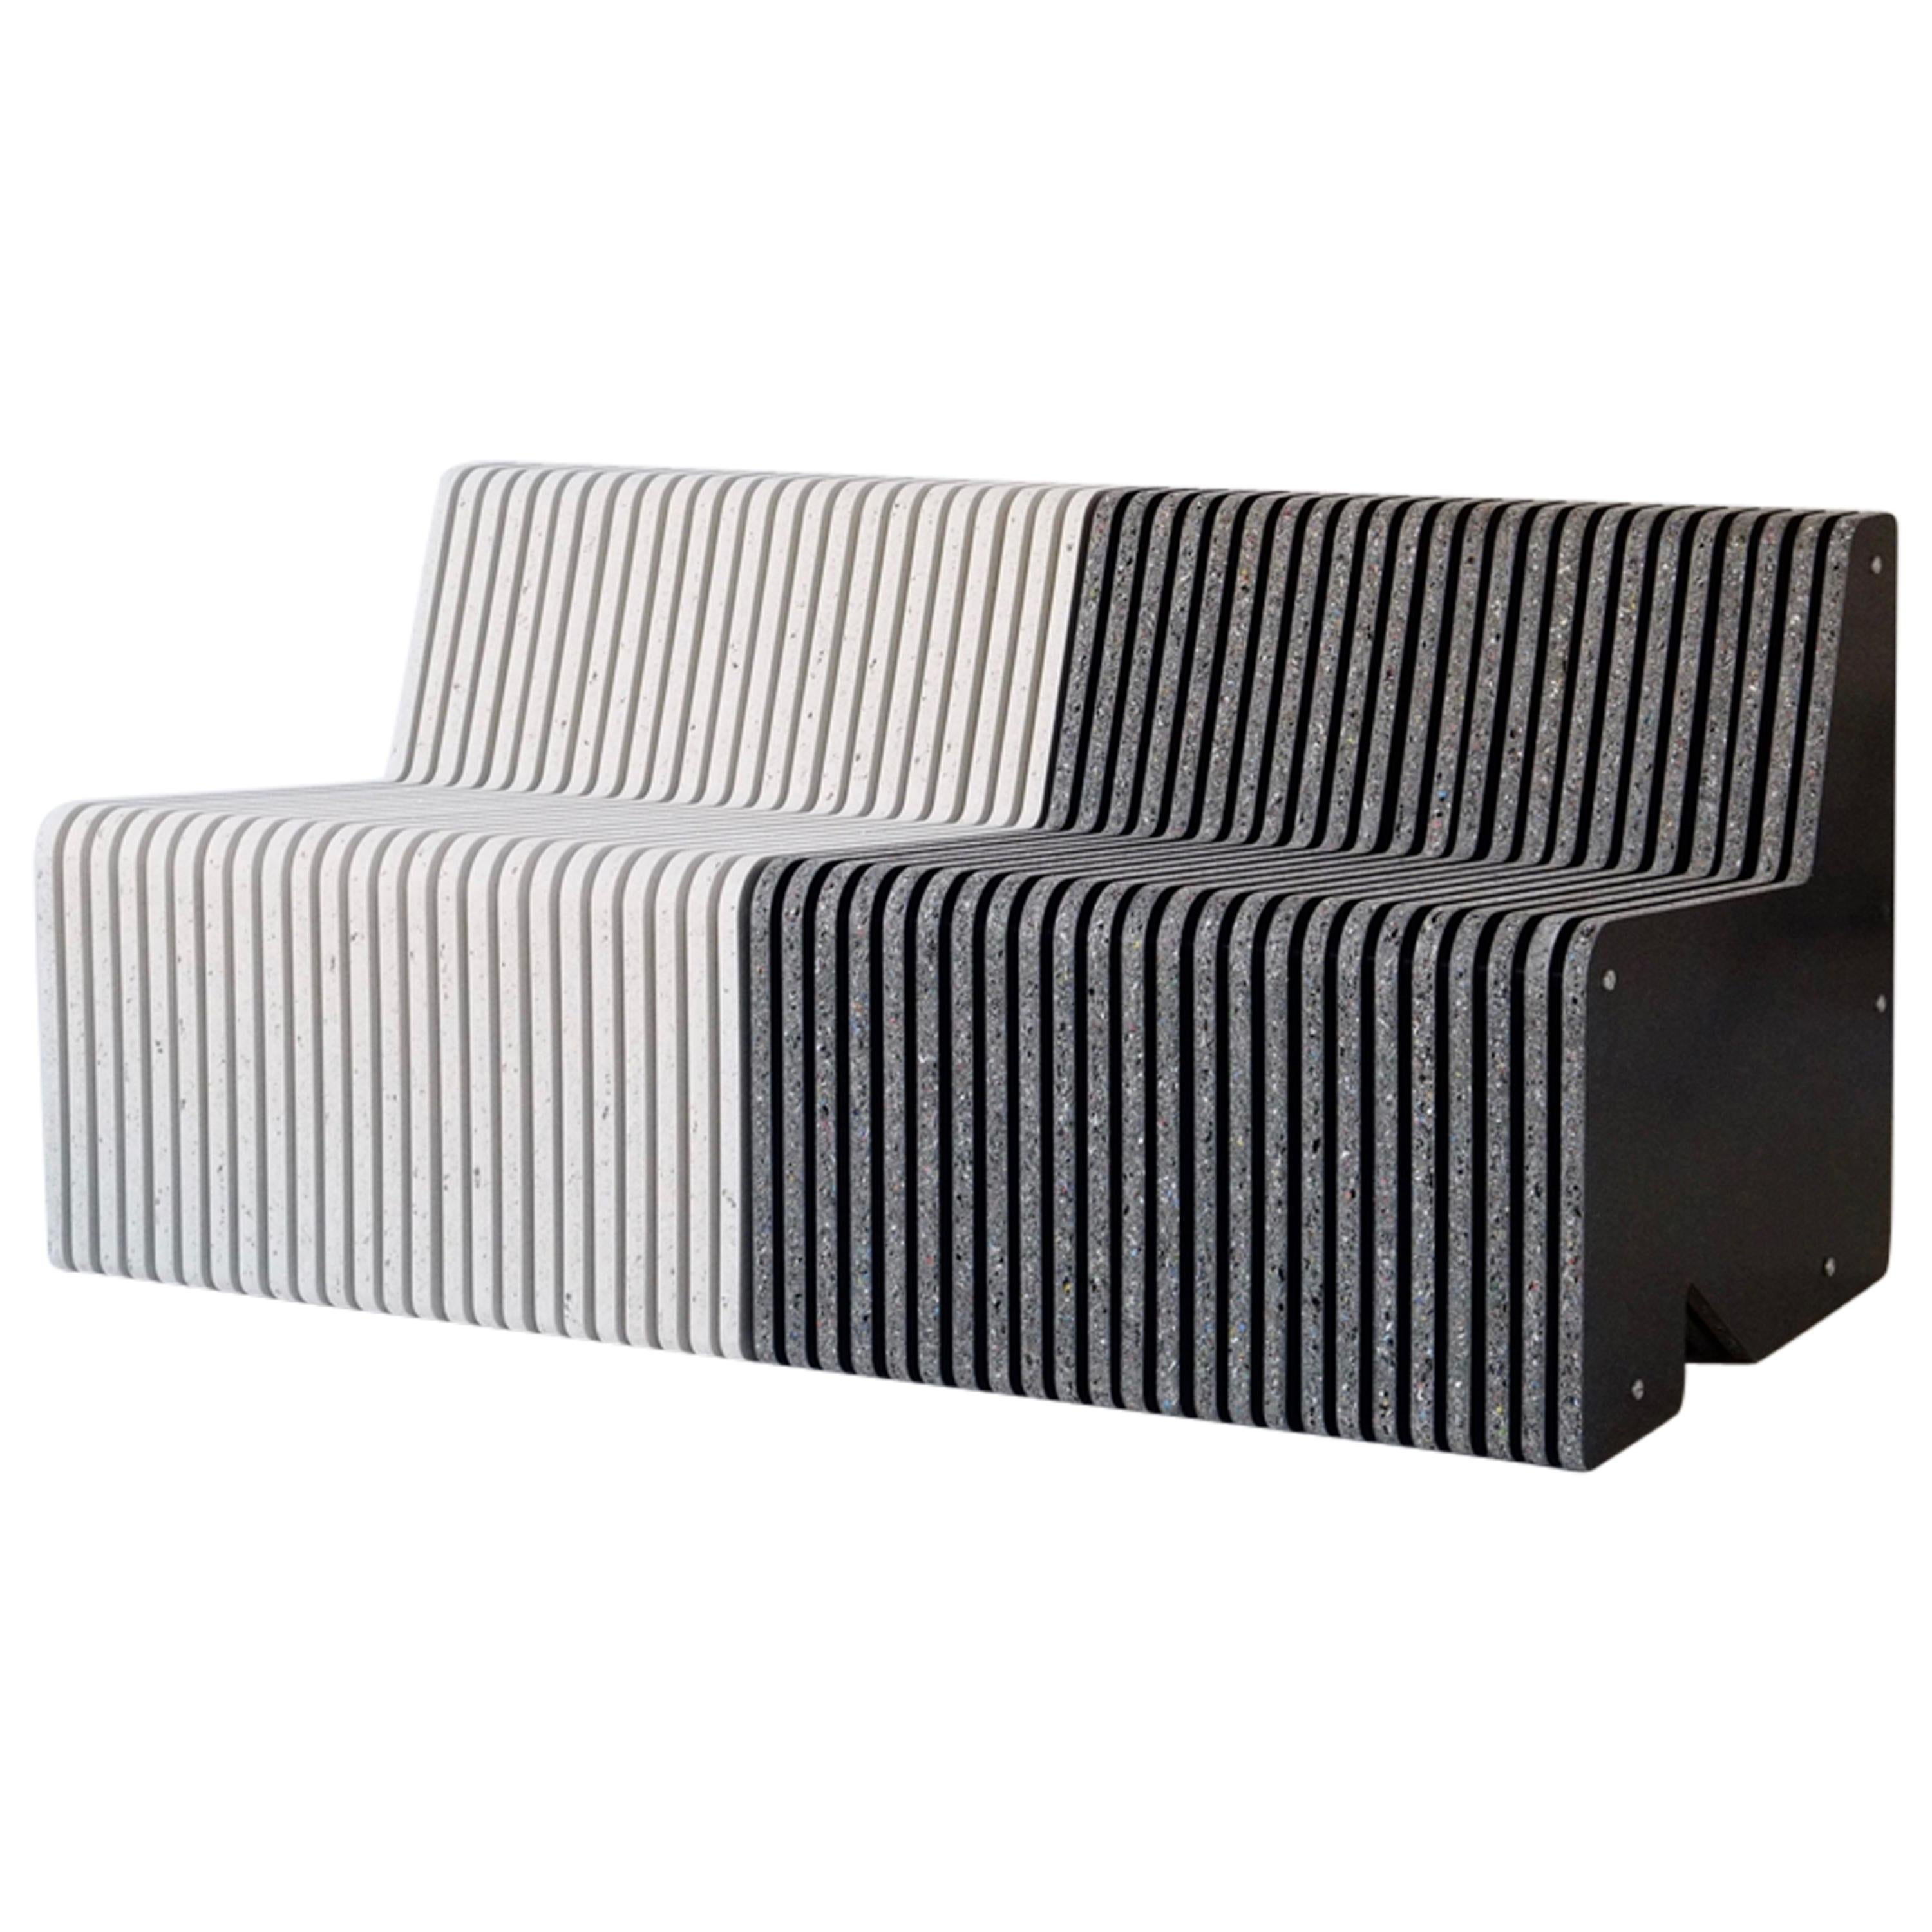 Sustainable Large Indoor / Outdoor Jää Bench Made with 100% Recycled Plastic